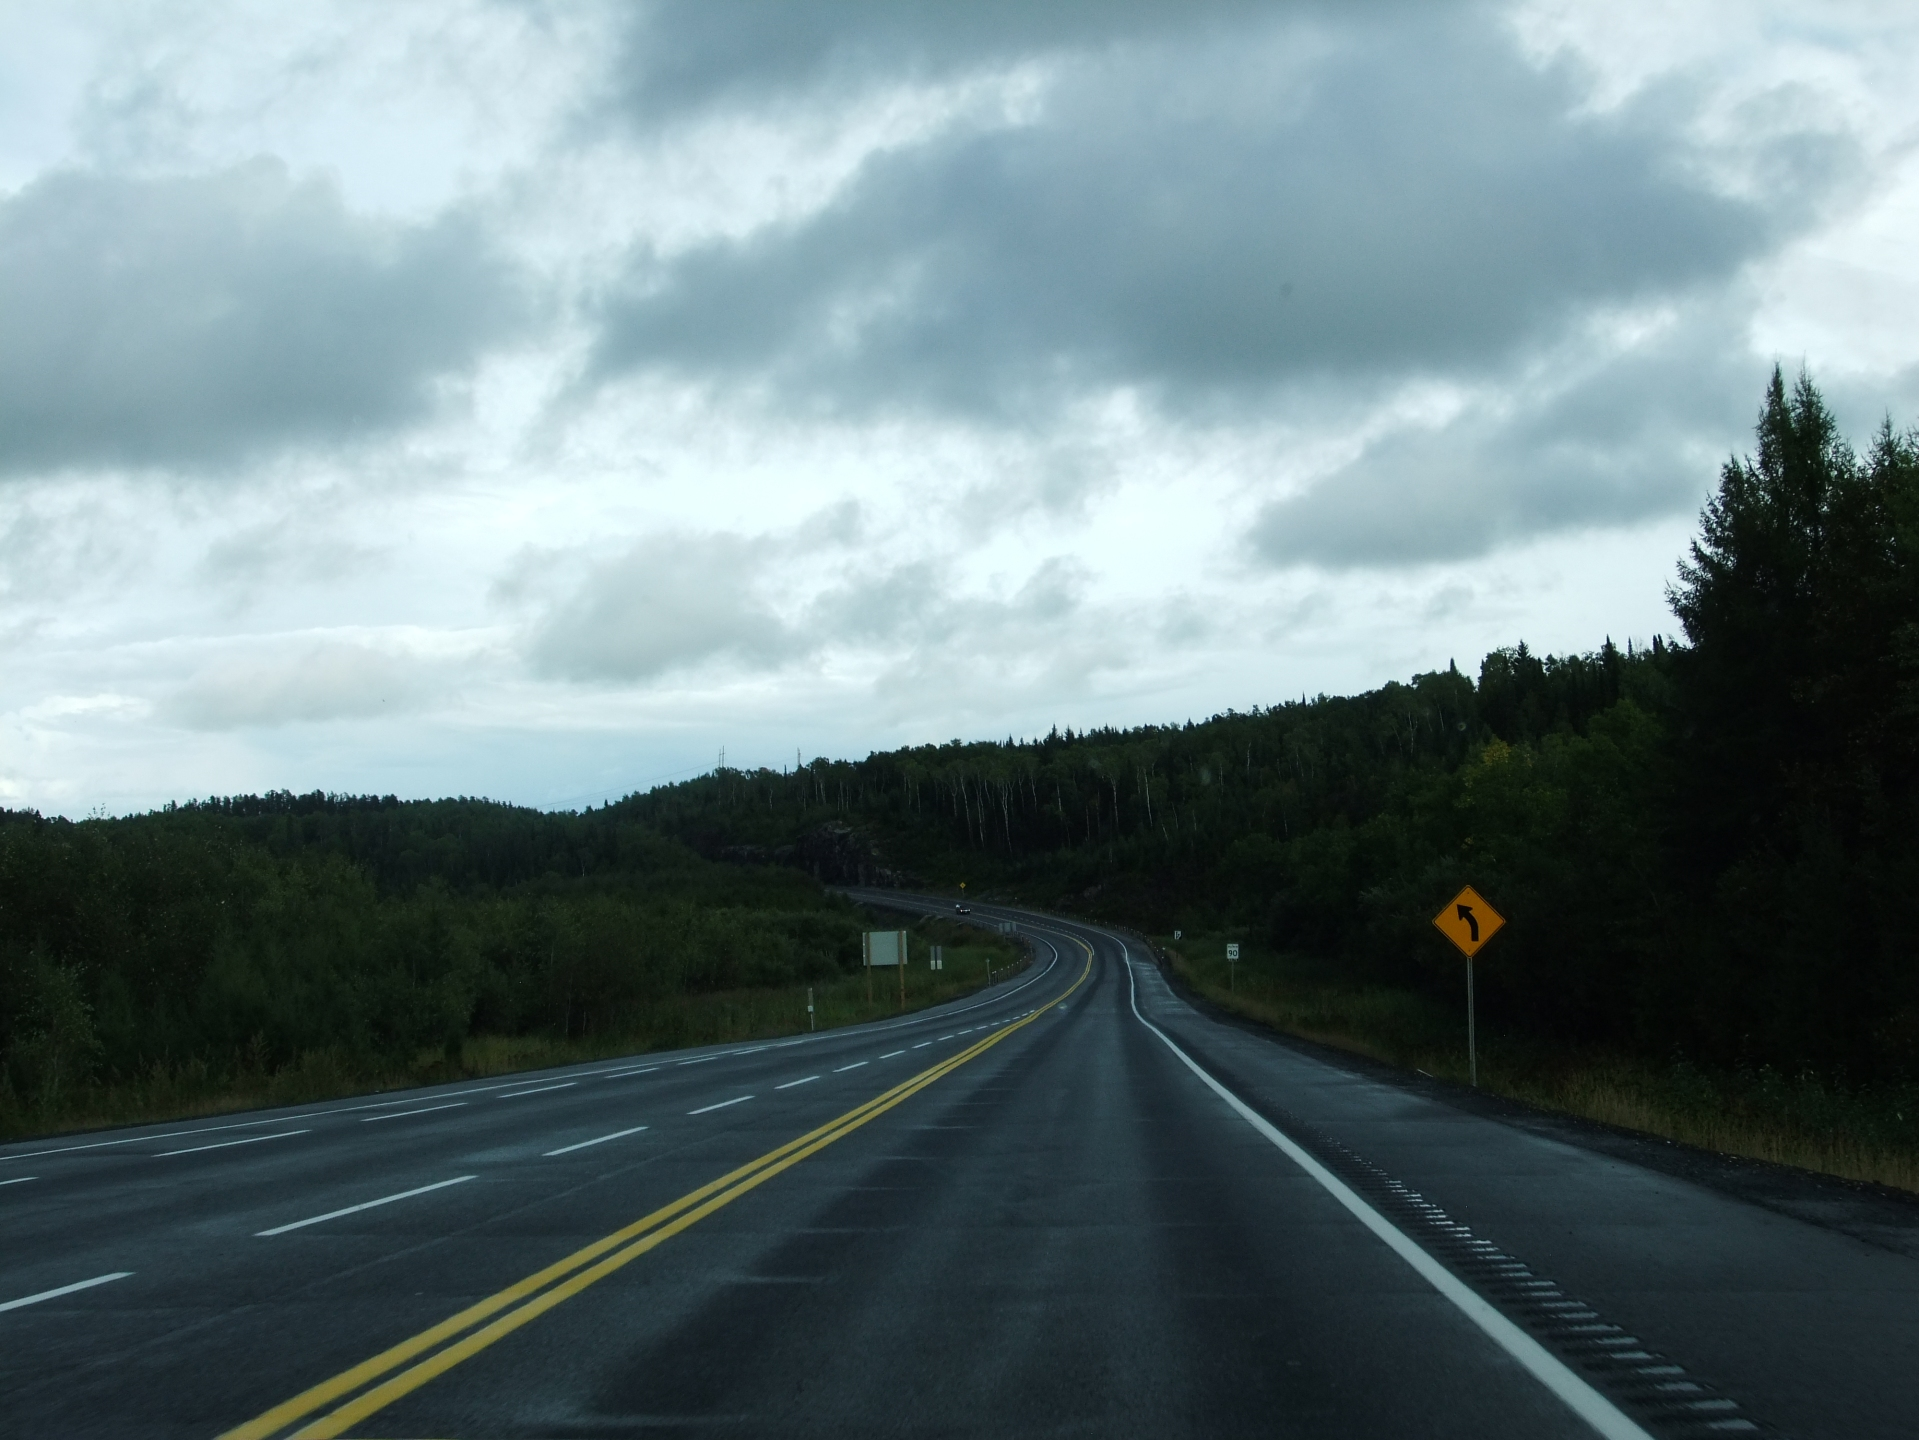 Road and forest in Ontario